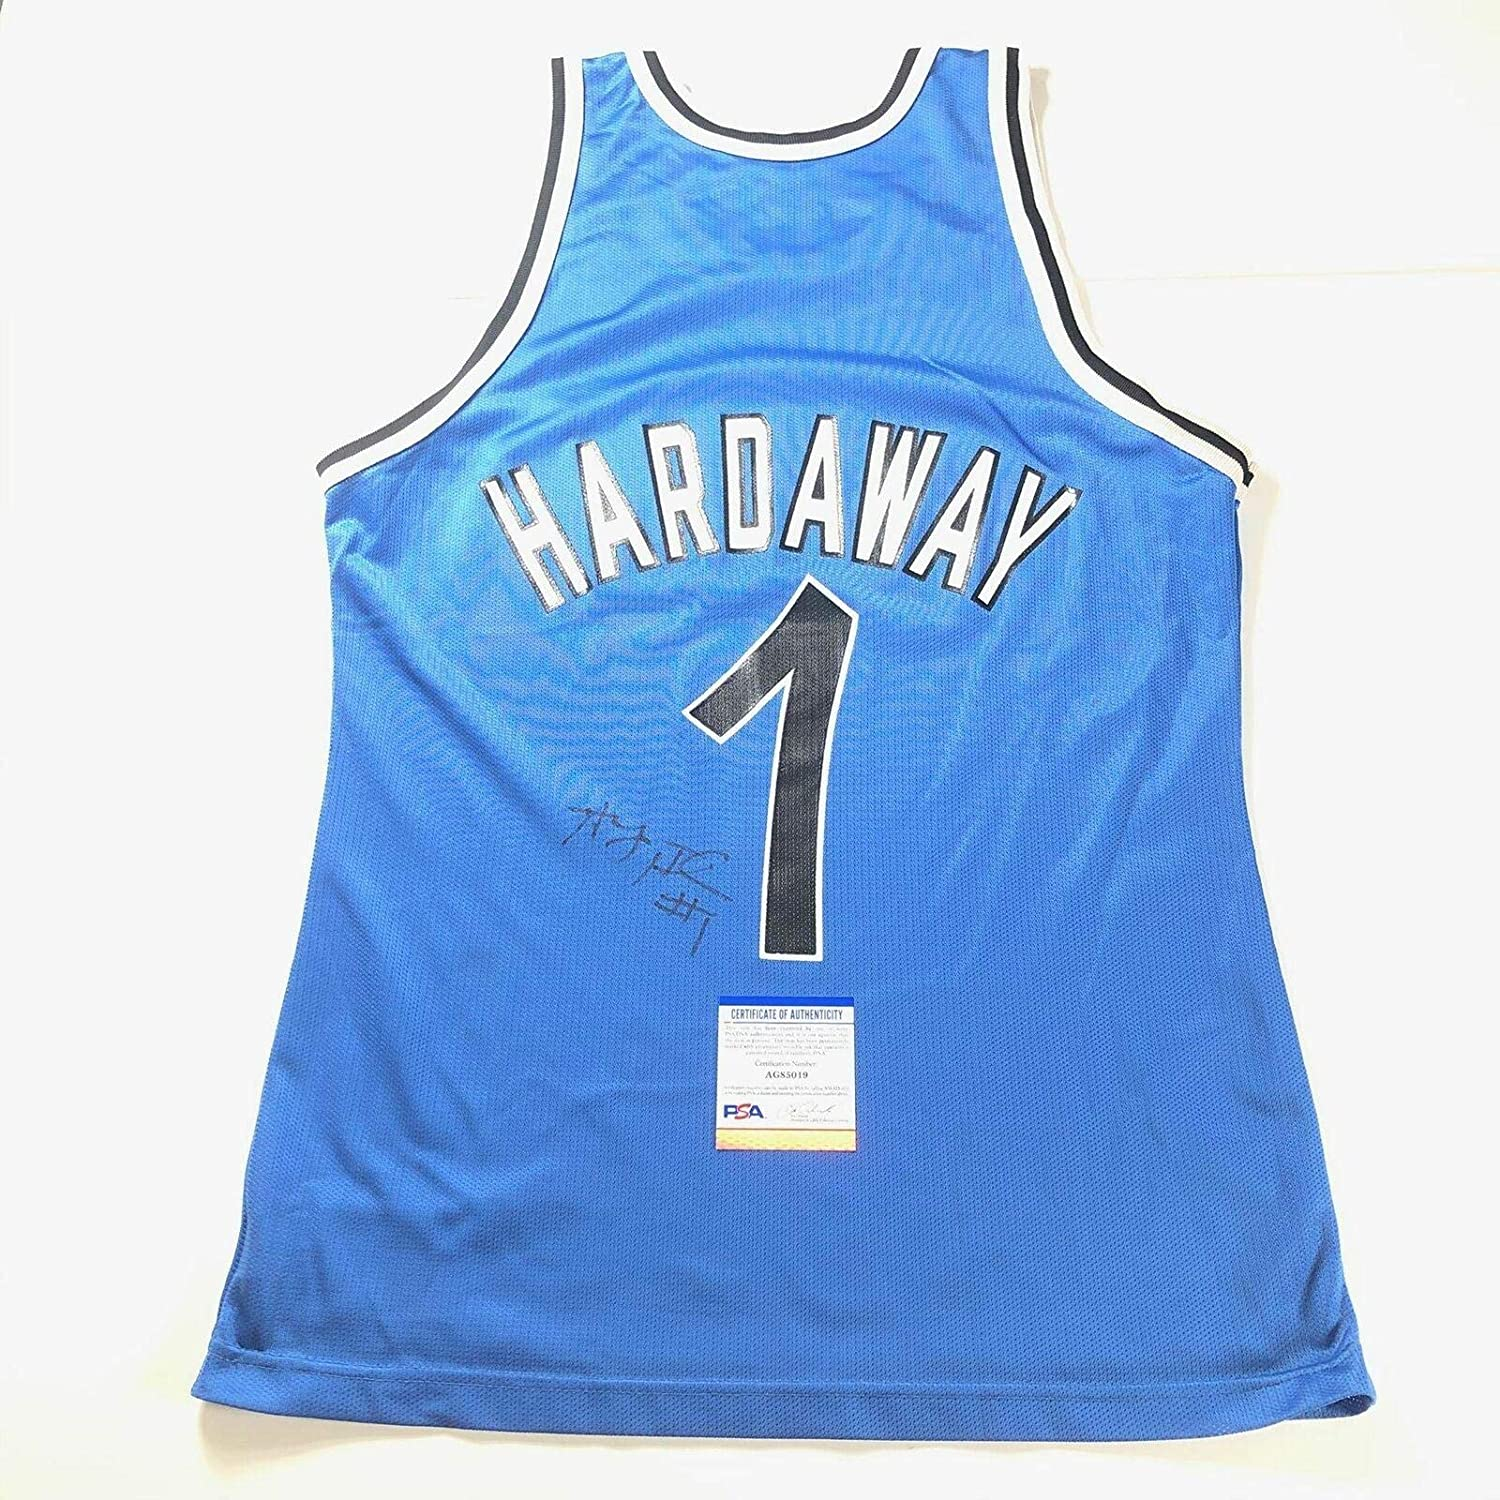 Penny Hardaway Autographed Jersey - Champion Anfernee - PSA/DNA Certified - Autographed NBA Jerseys